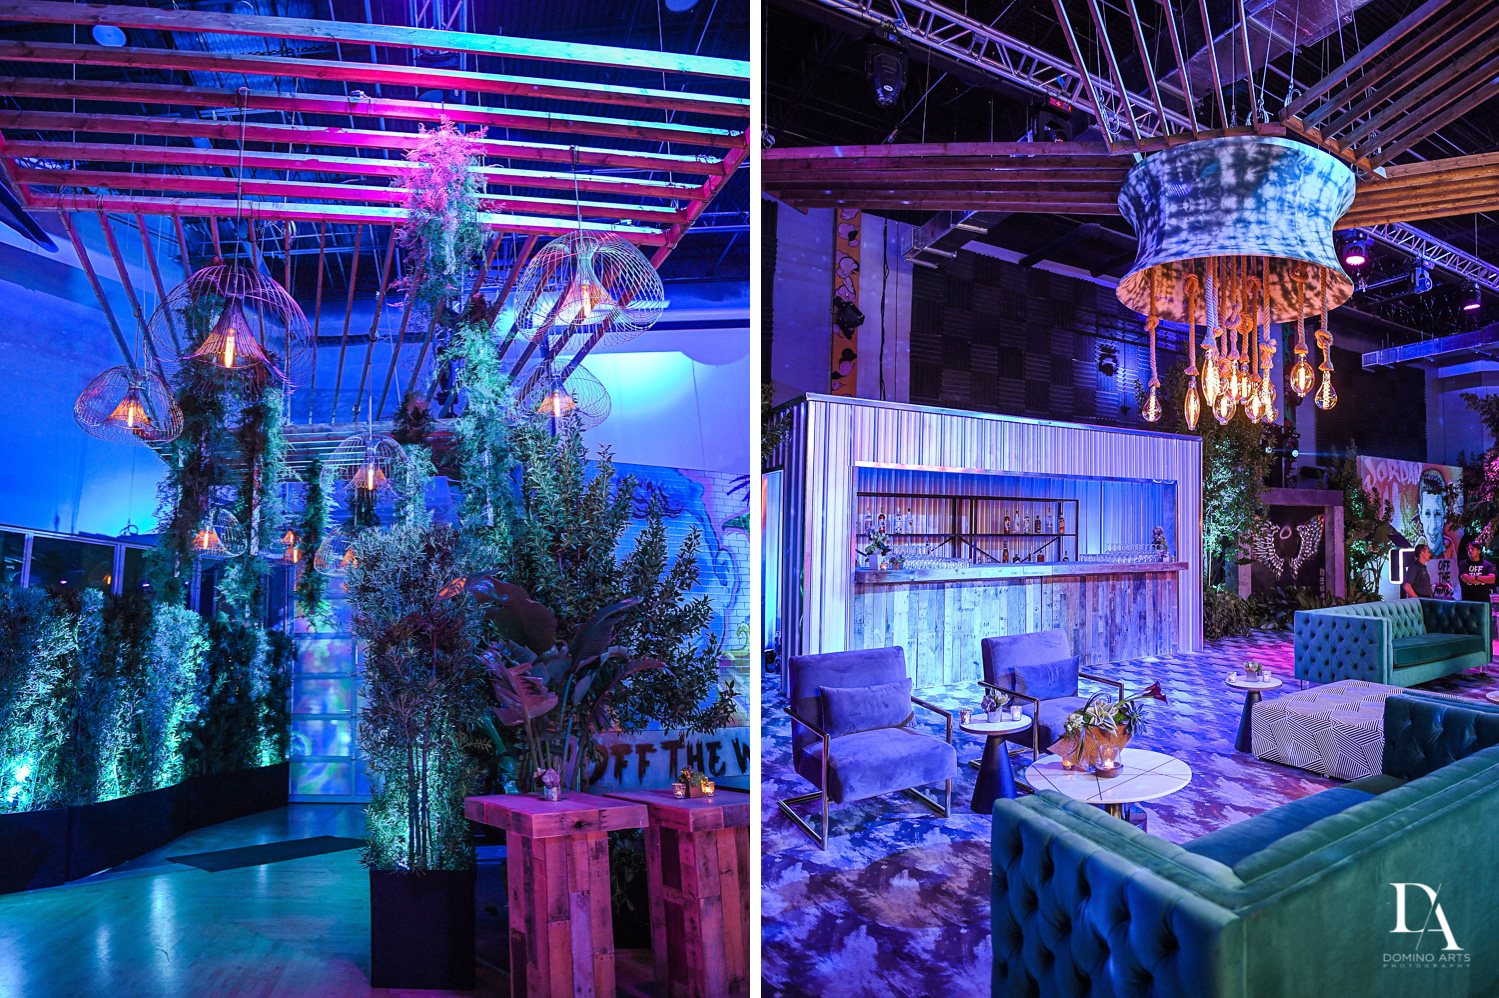 decor and details at Urban Graffiti BNai Mitzvah with celebrity Shaq at Xtreme Action Park by Domino Arts Photography